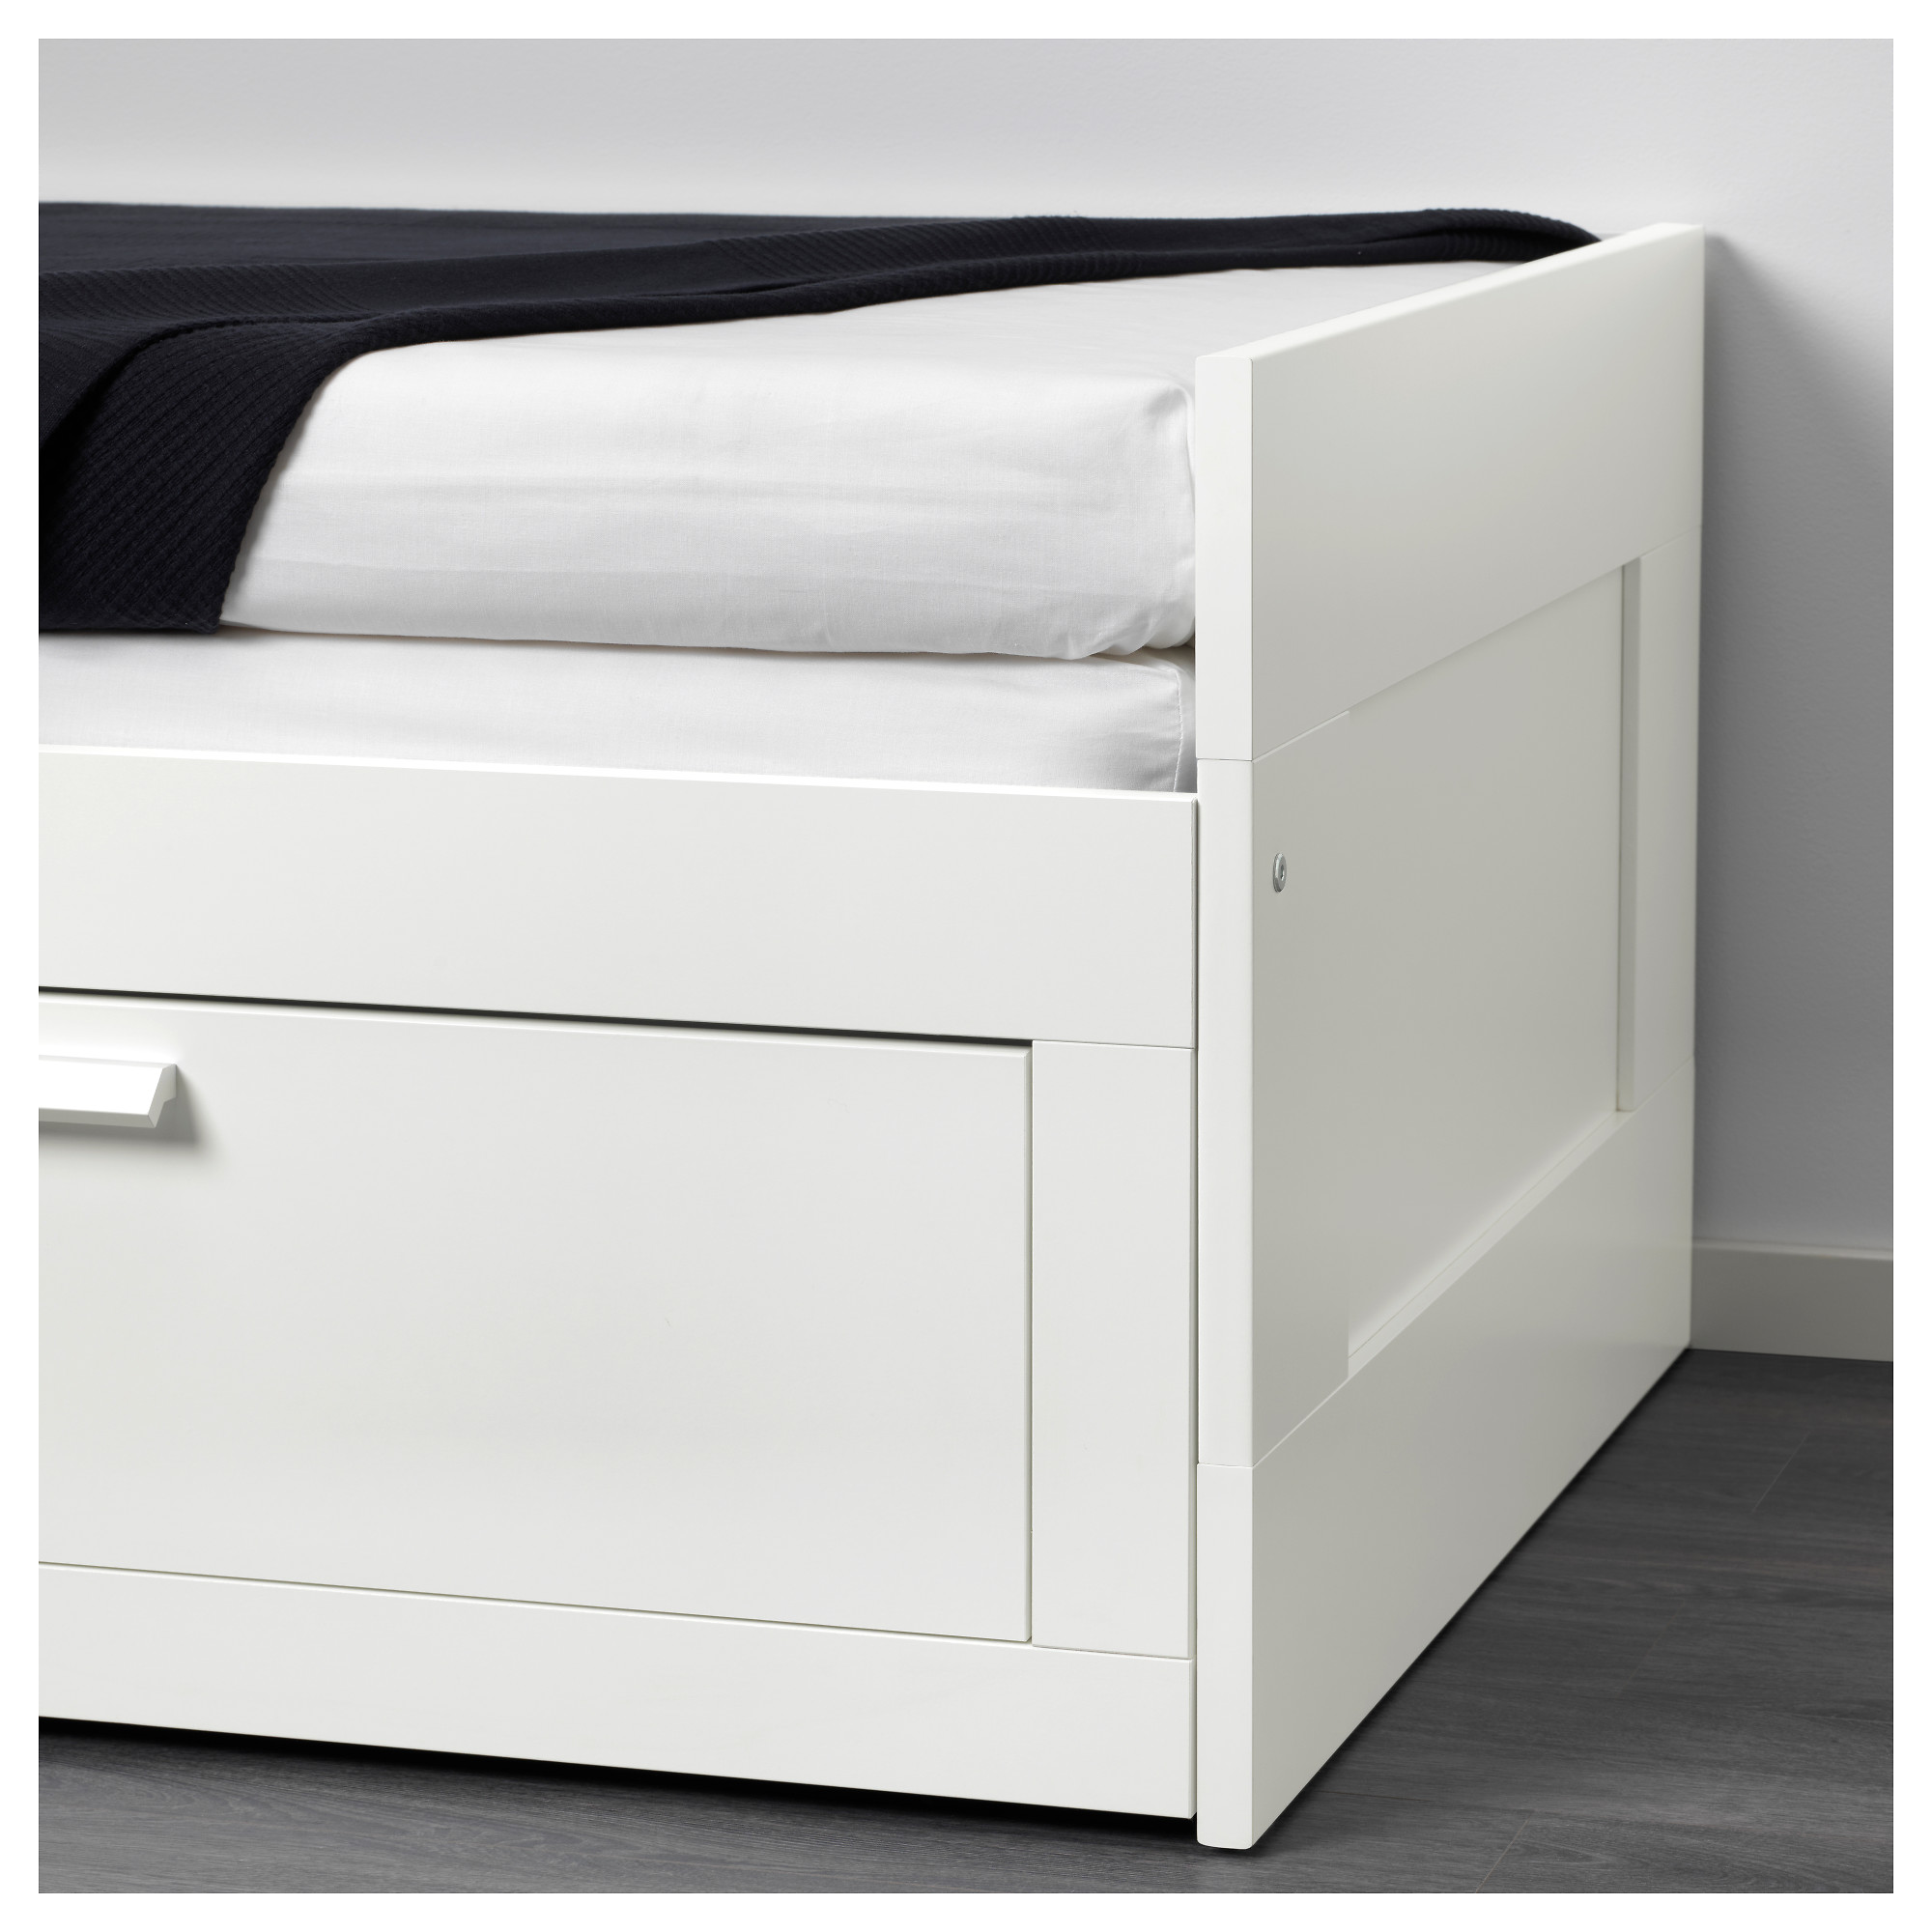 BRIMNES Day bed frame with 2 drawers IKEA